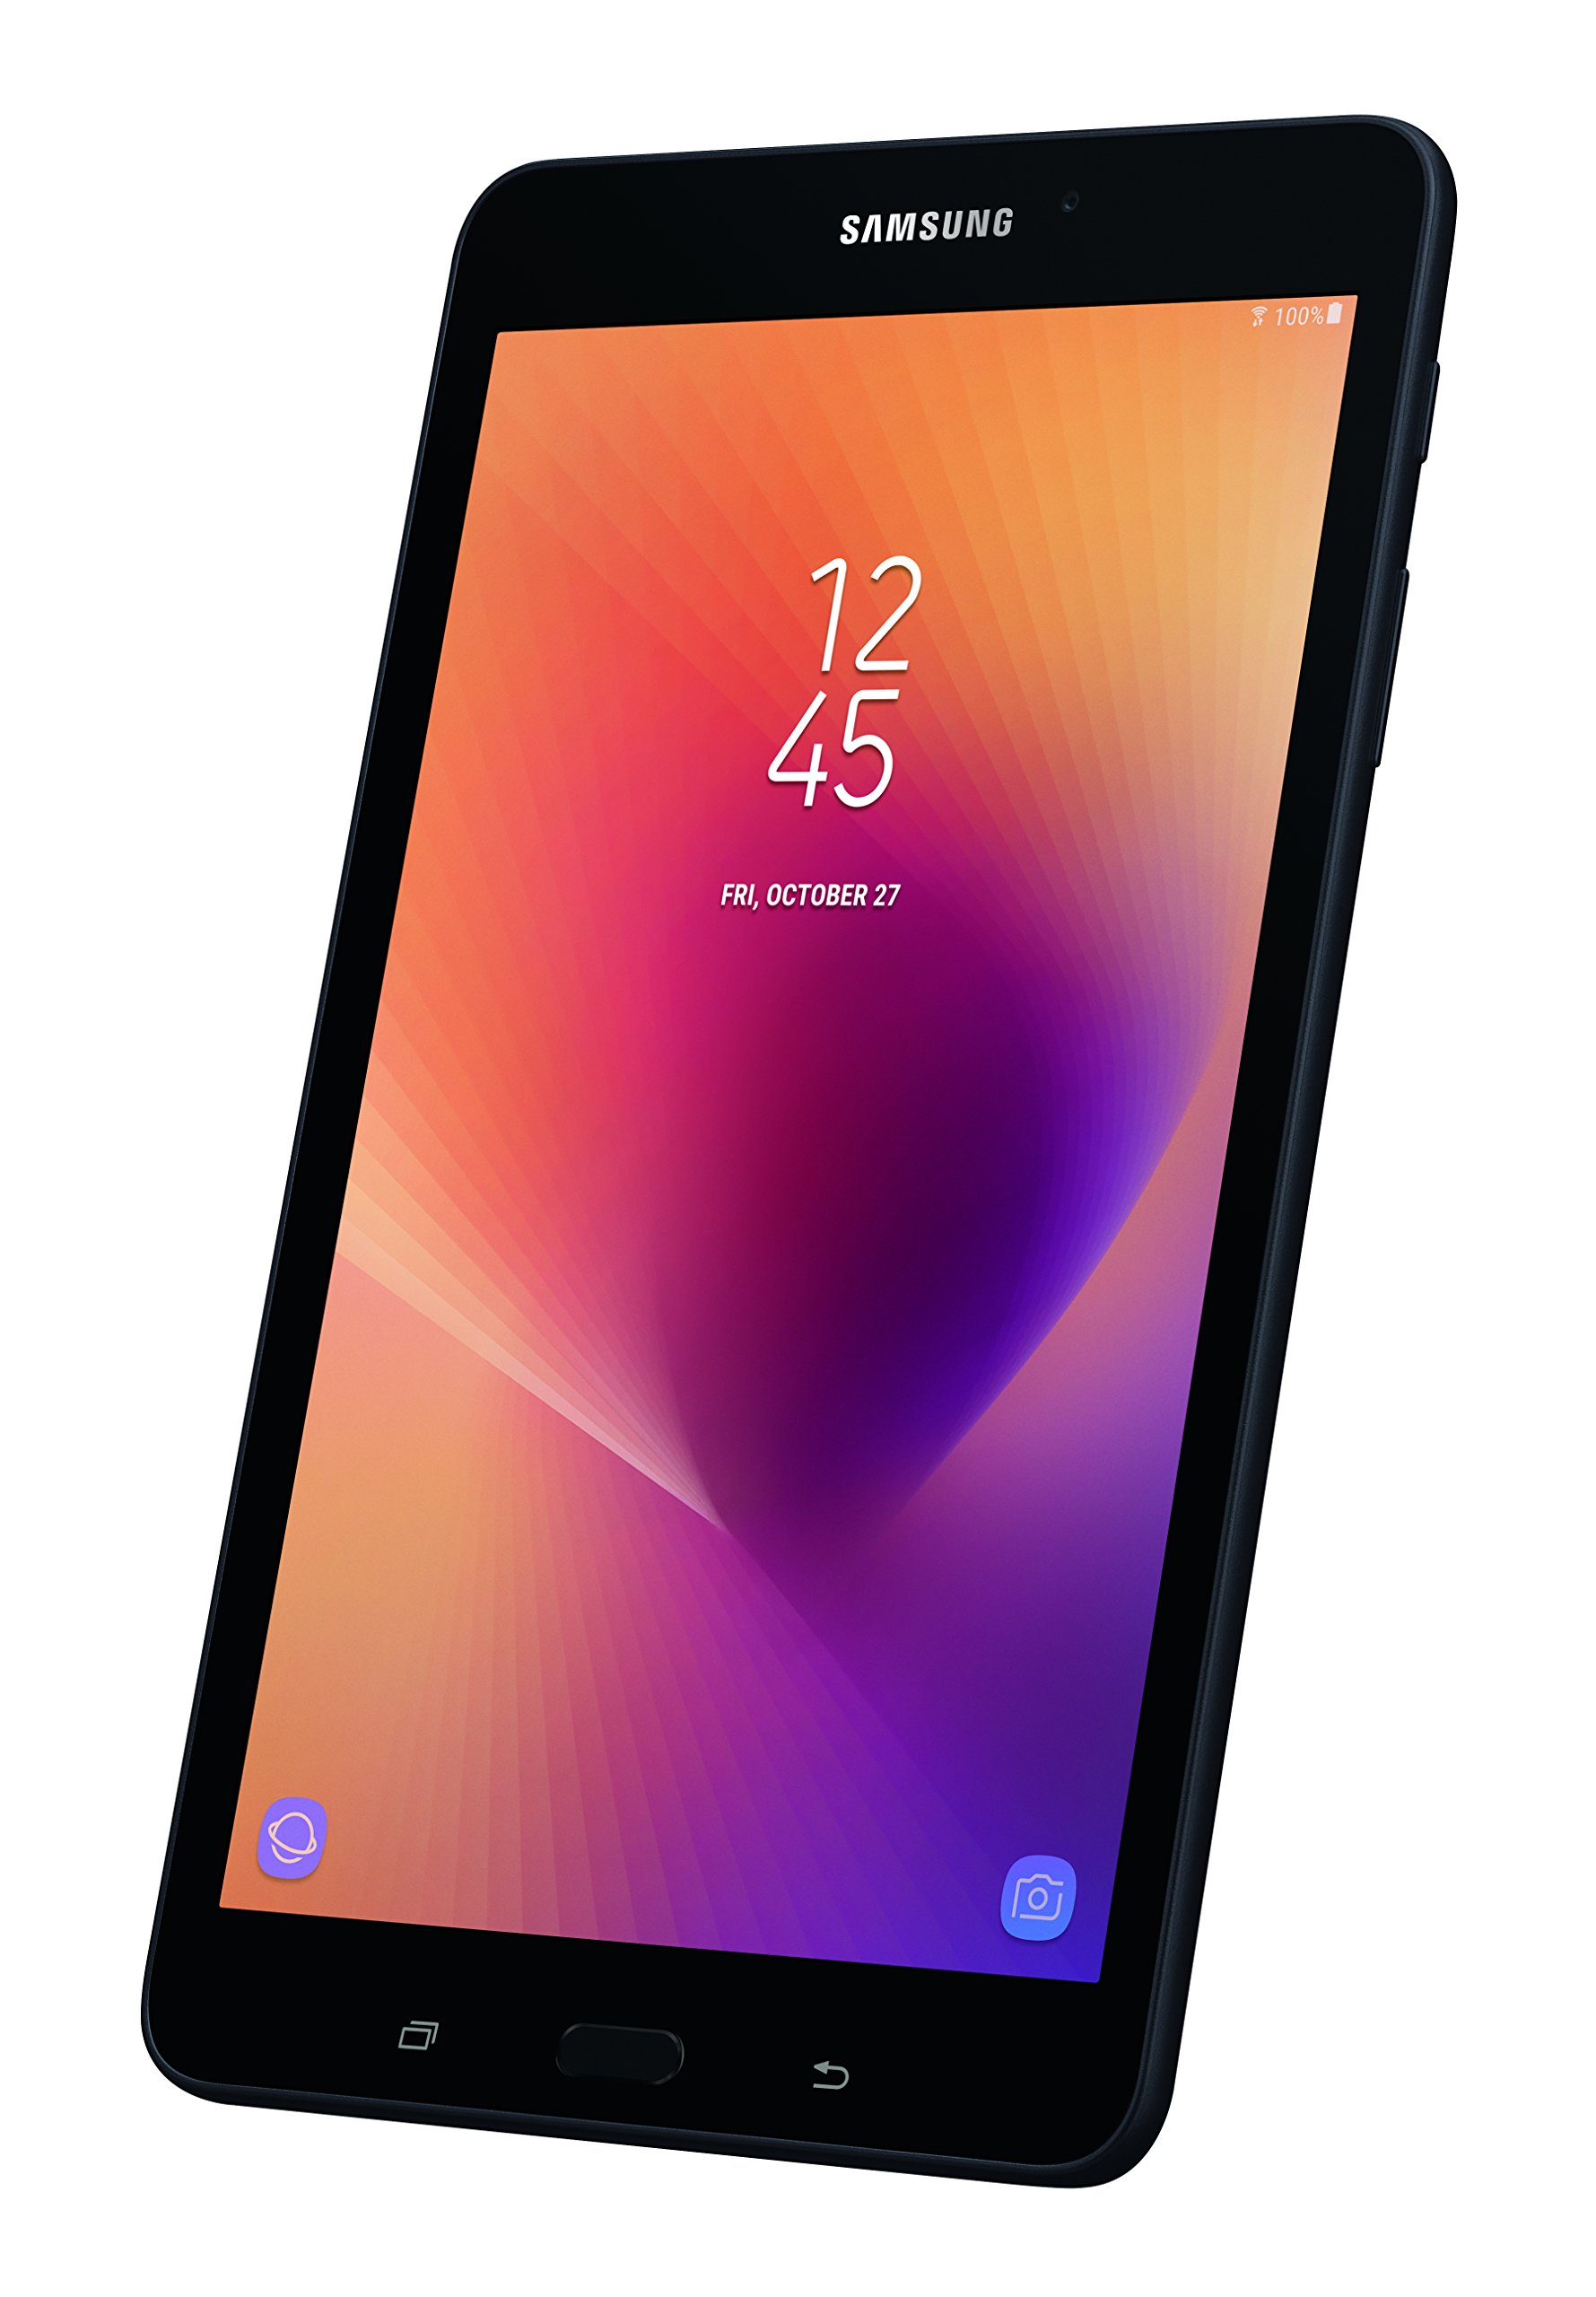 Samsung Galaxy Tab A 8'' 32 GB Wifi Tablet (Black)